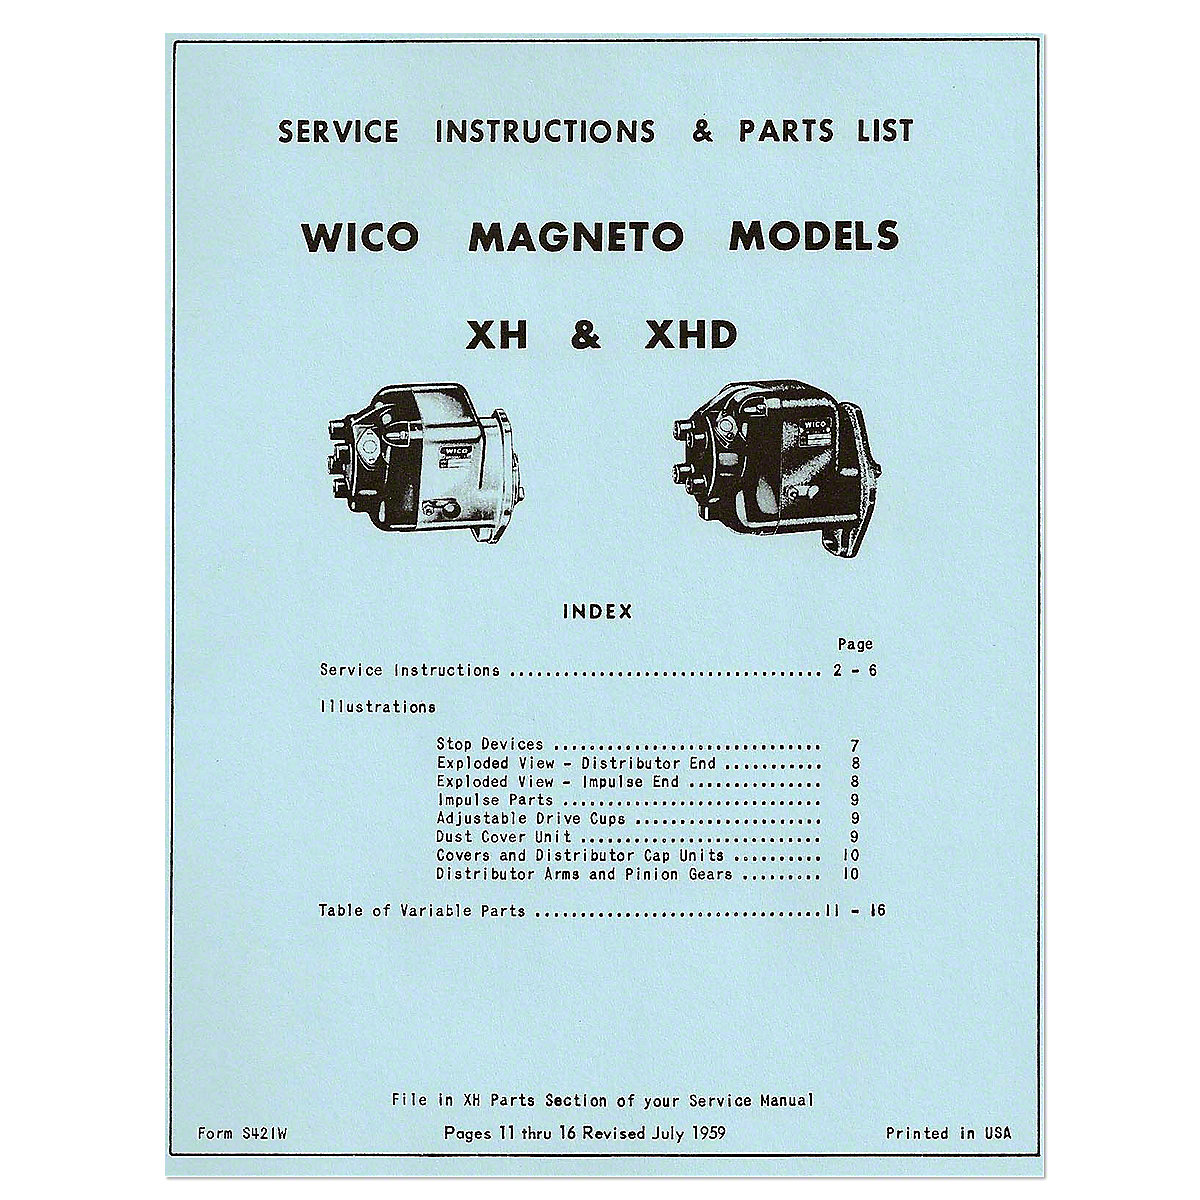 MAG6Wico XH And XHD Magneto Service - Instructions And Parts List (1959)